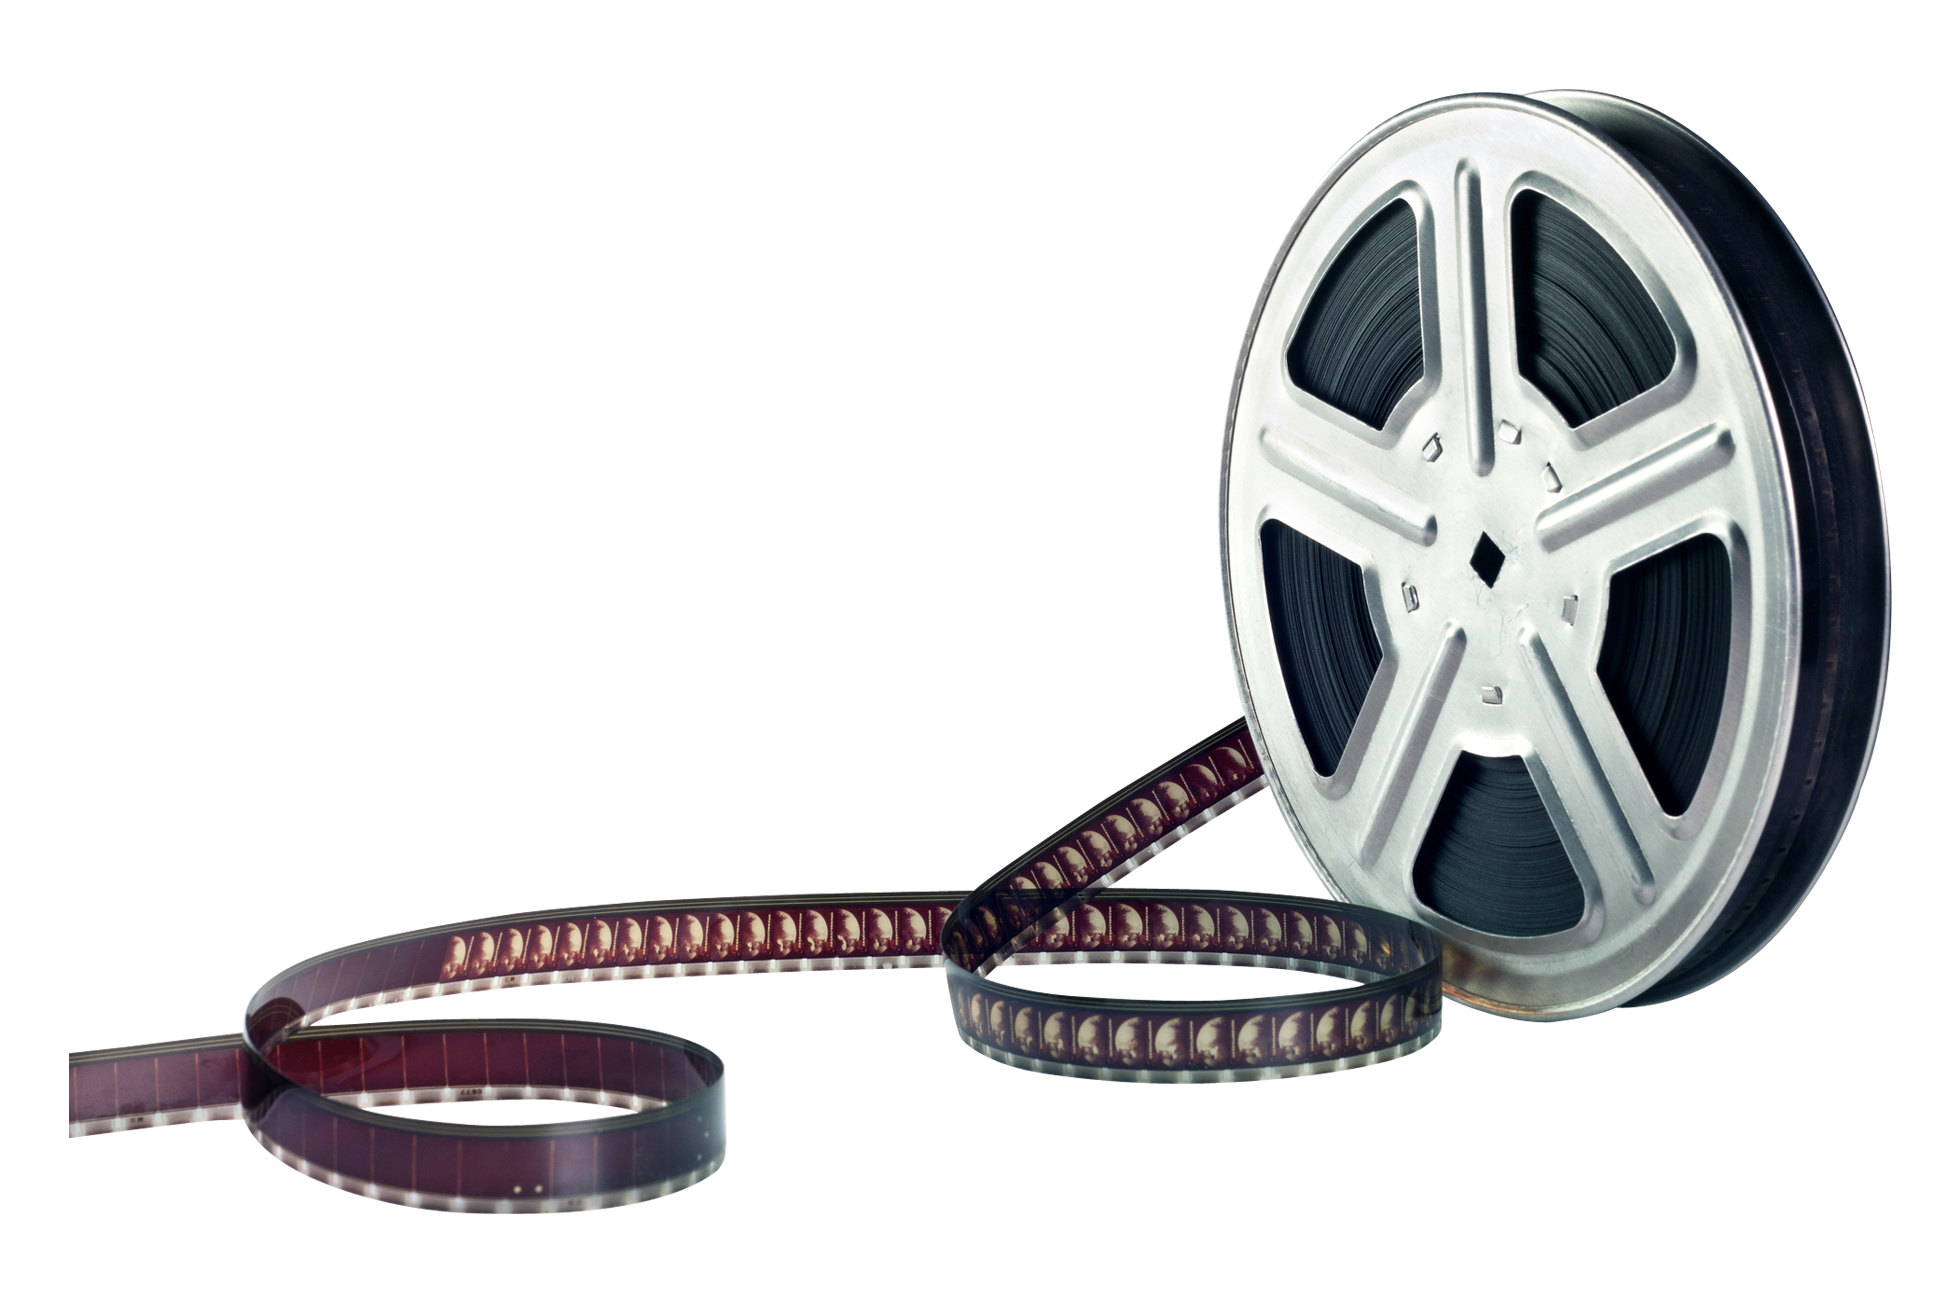 Film reels png. Reel transparent images pluspng